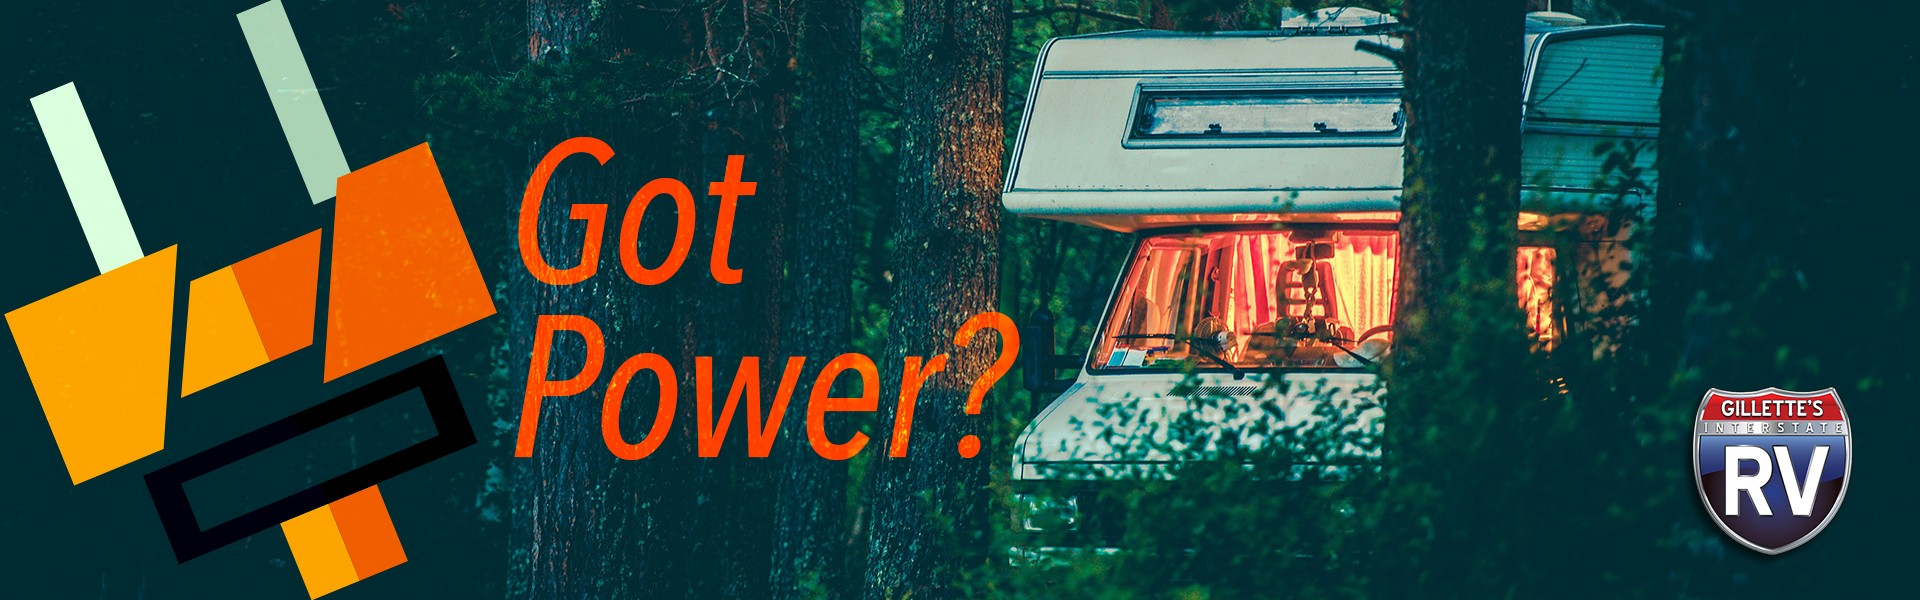 Got Power? Motorhome in the wilderness boondocking with electric plug